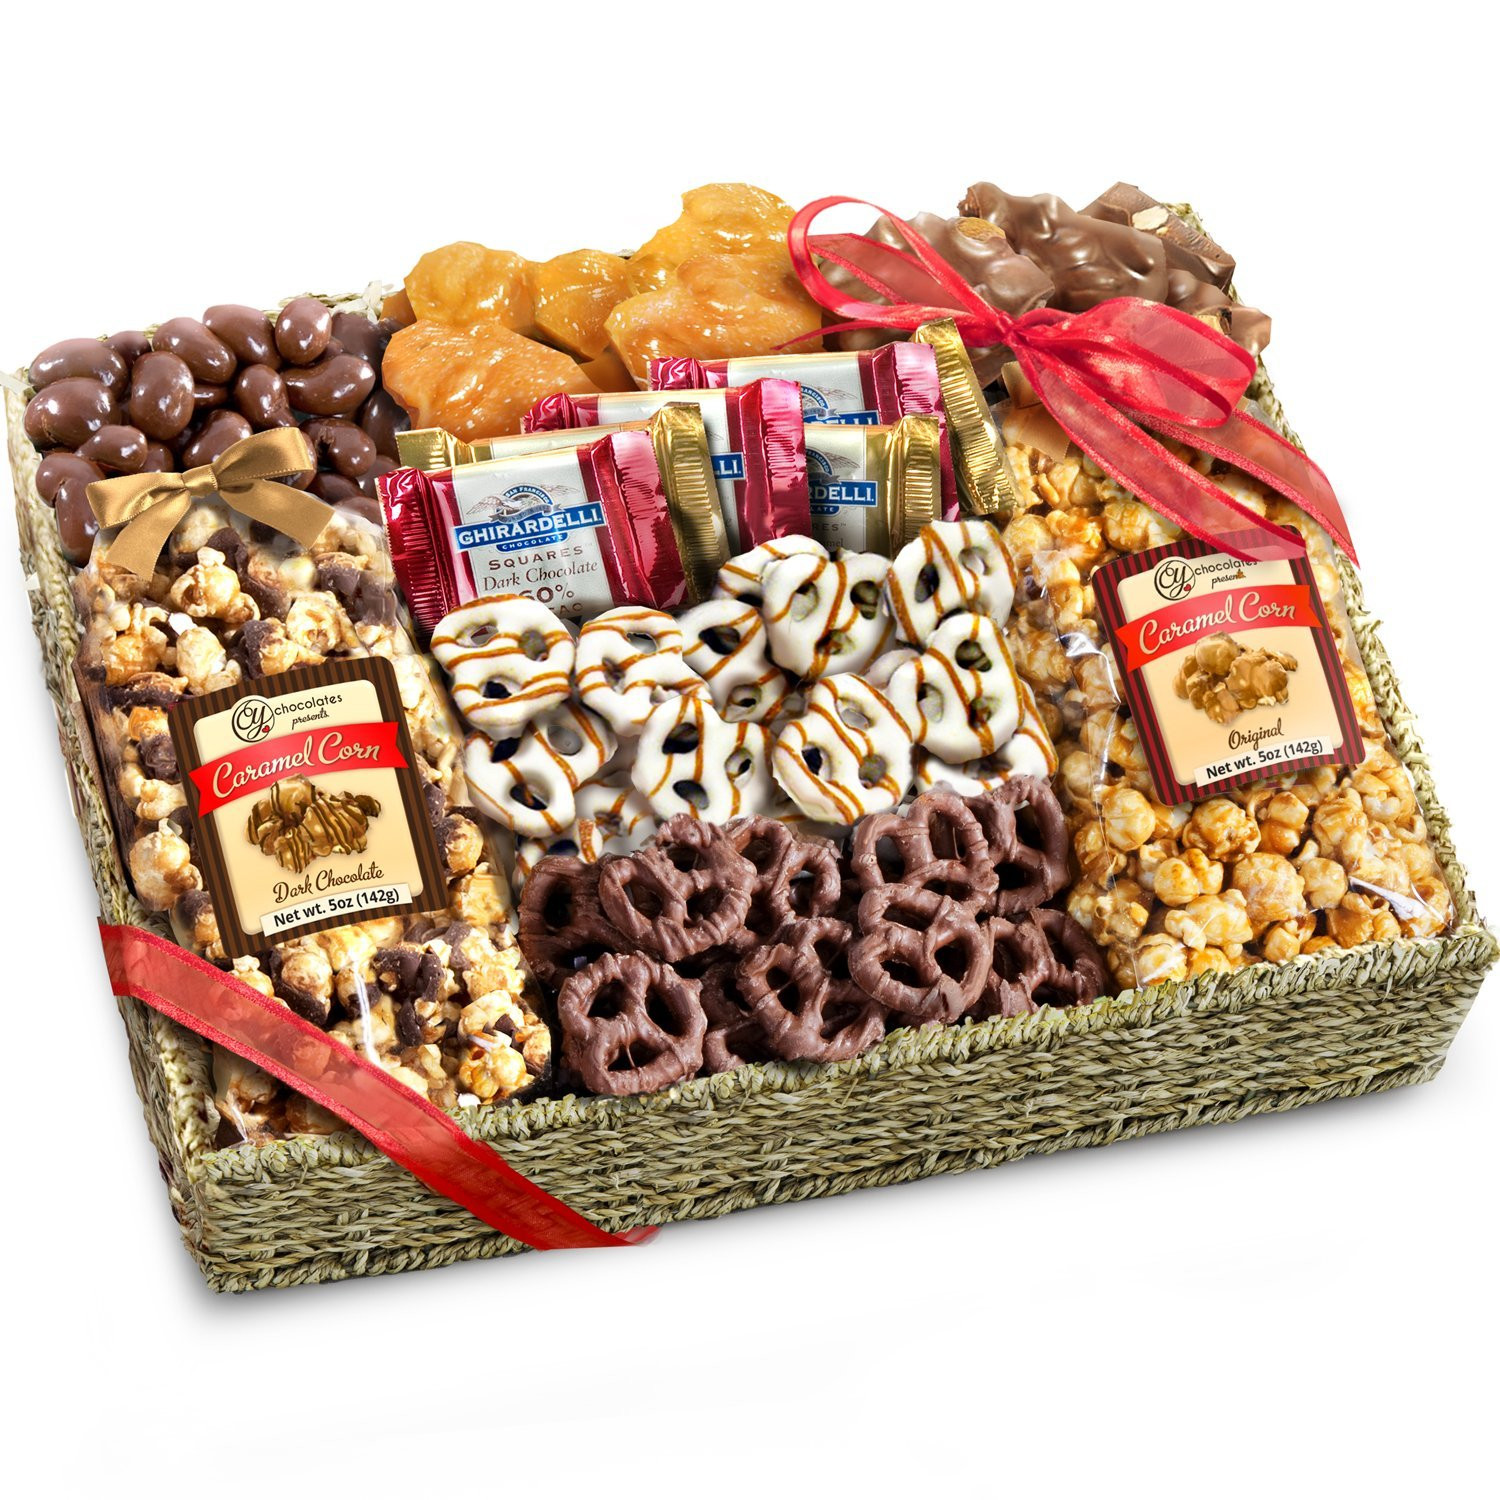 Food Gifts For Christmas To Be Delivered  Cookie Gift Boxes & Baskets Best Holiday Treats Snacks